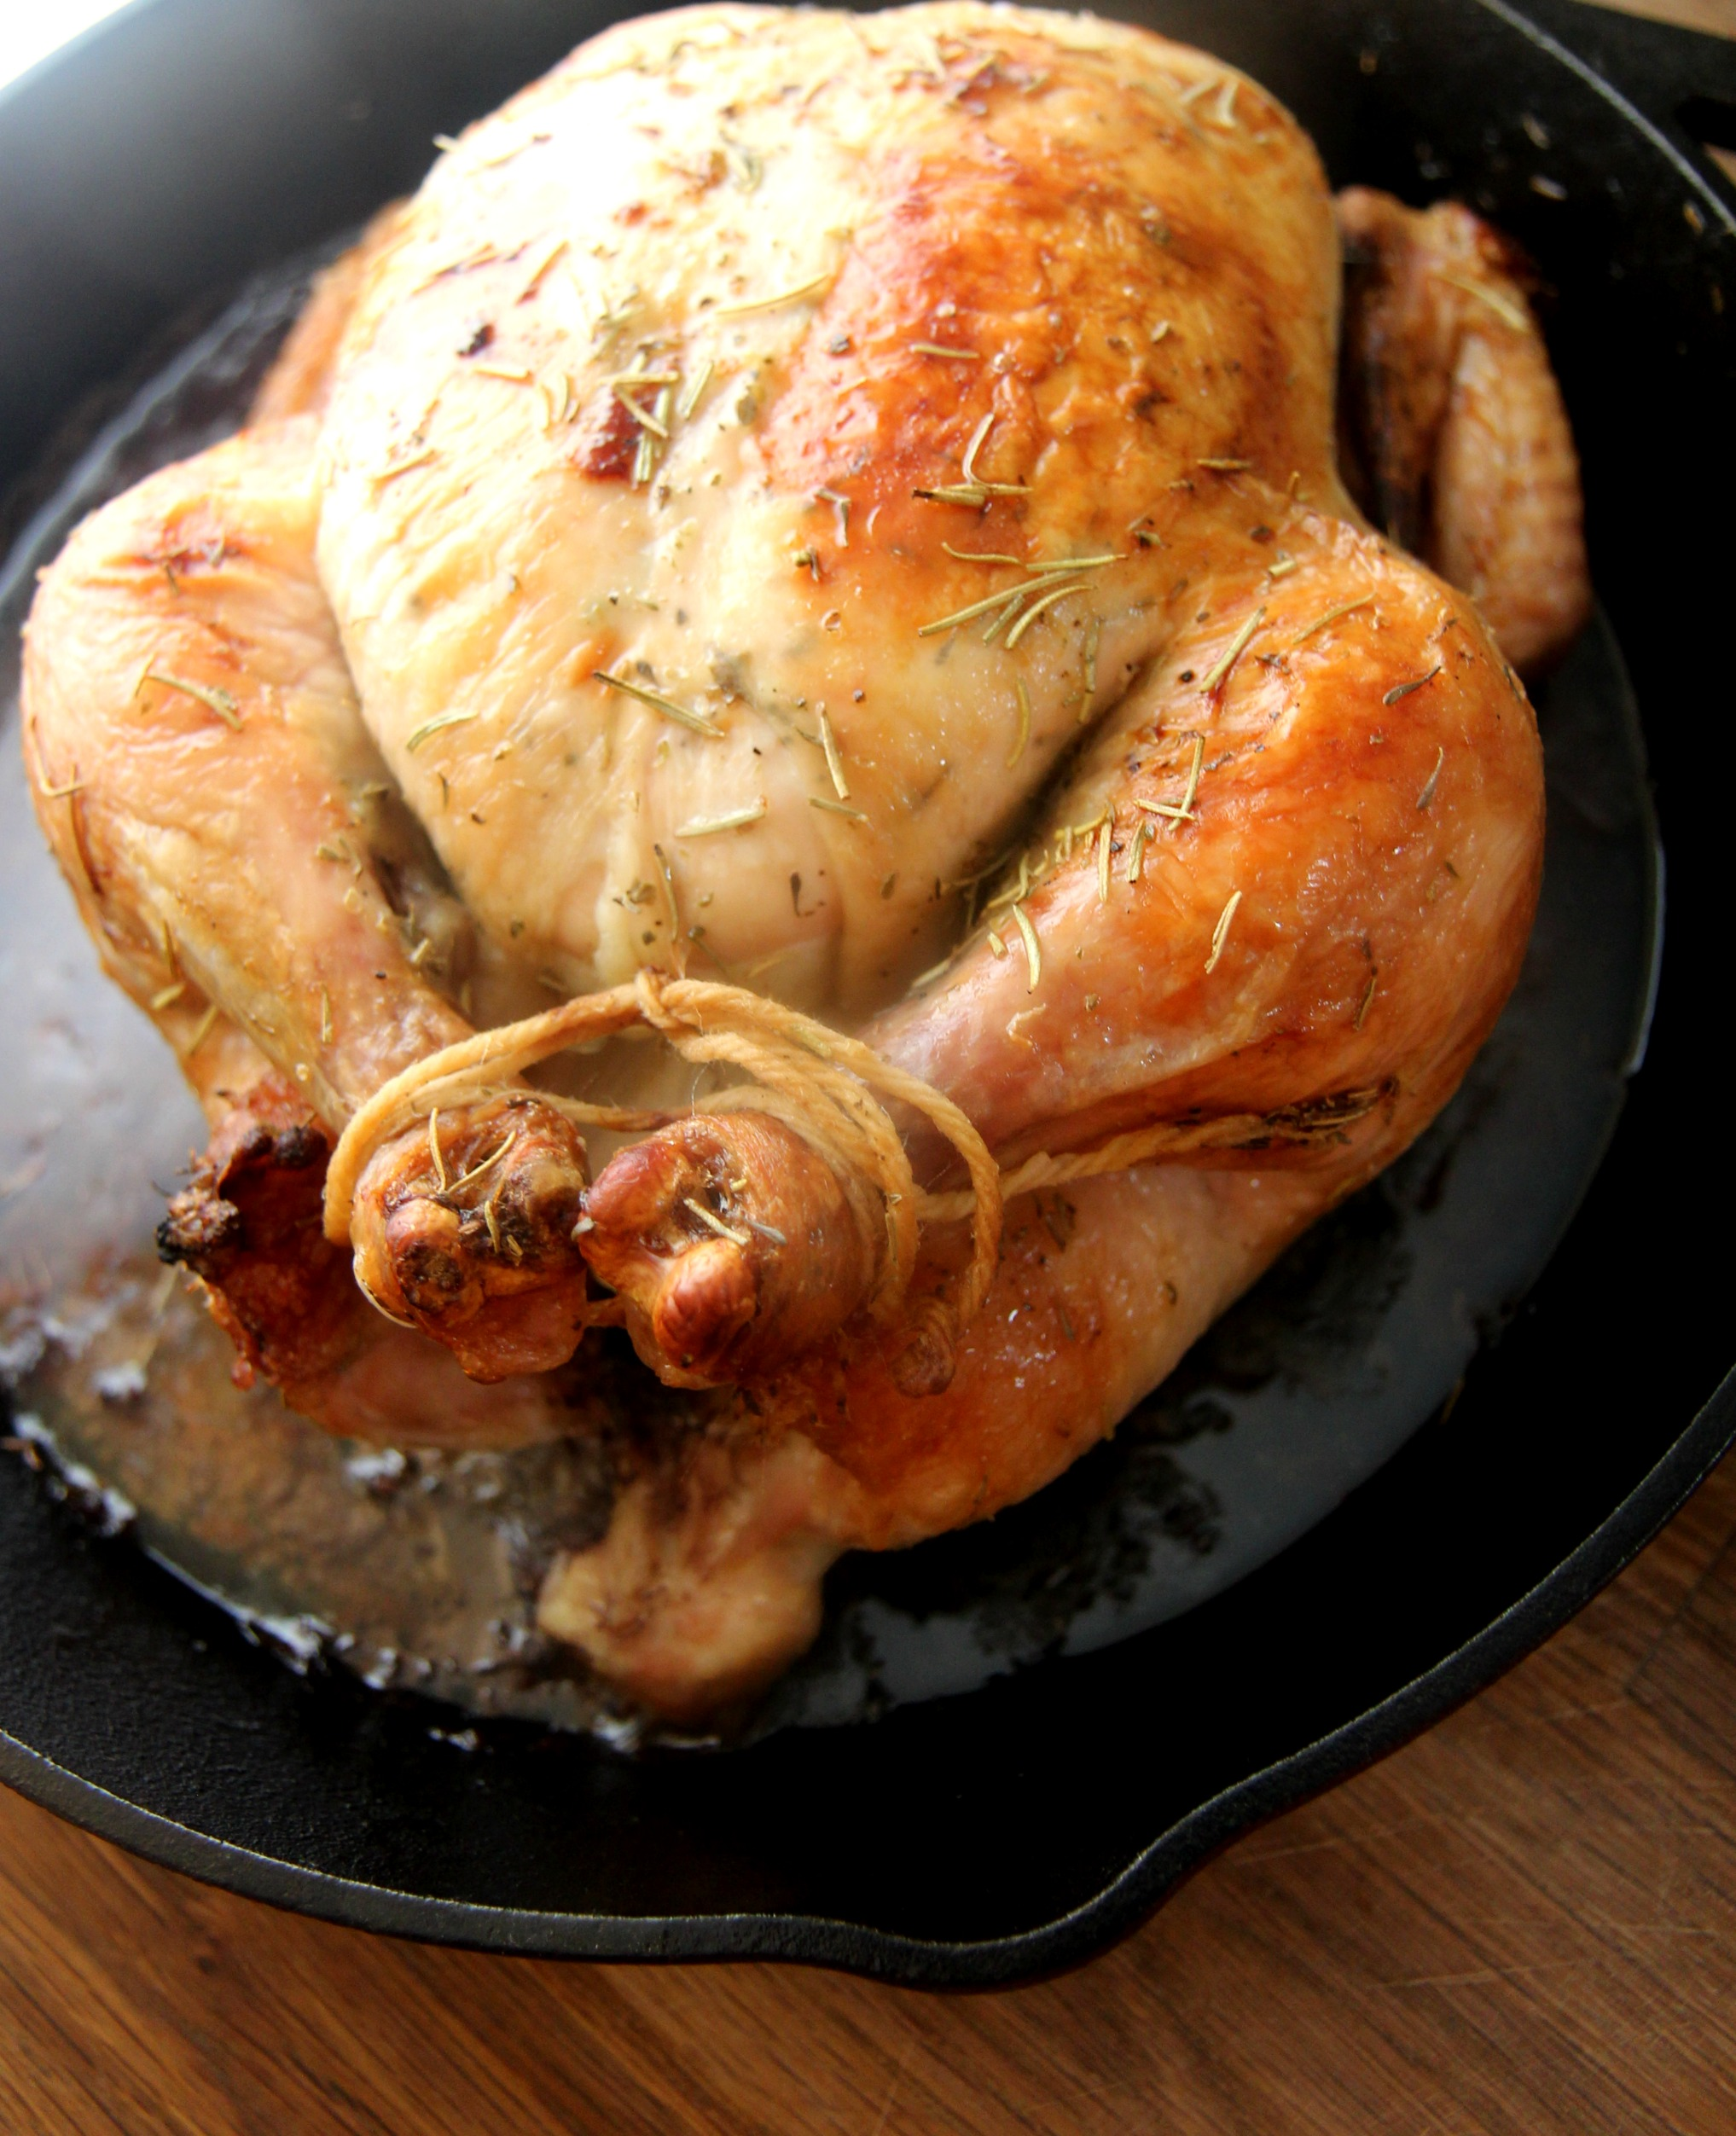 This juicy roasted chicken is smothered in herb butter and roasted to perfection